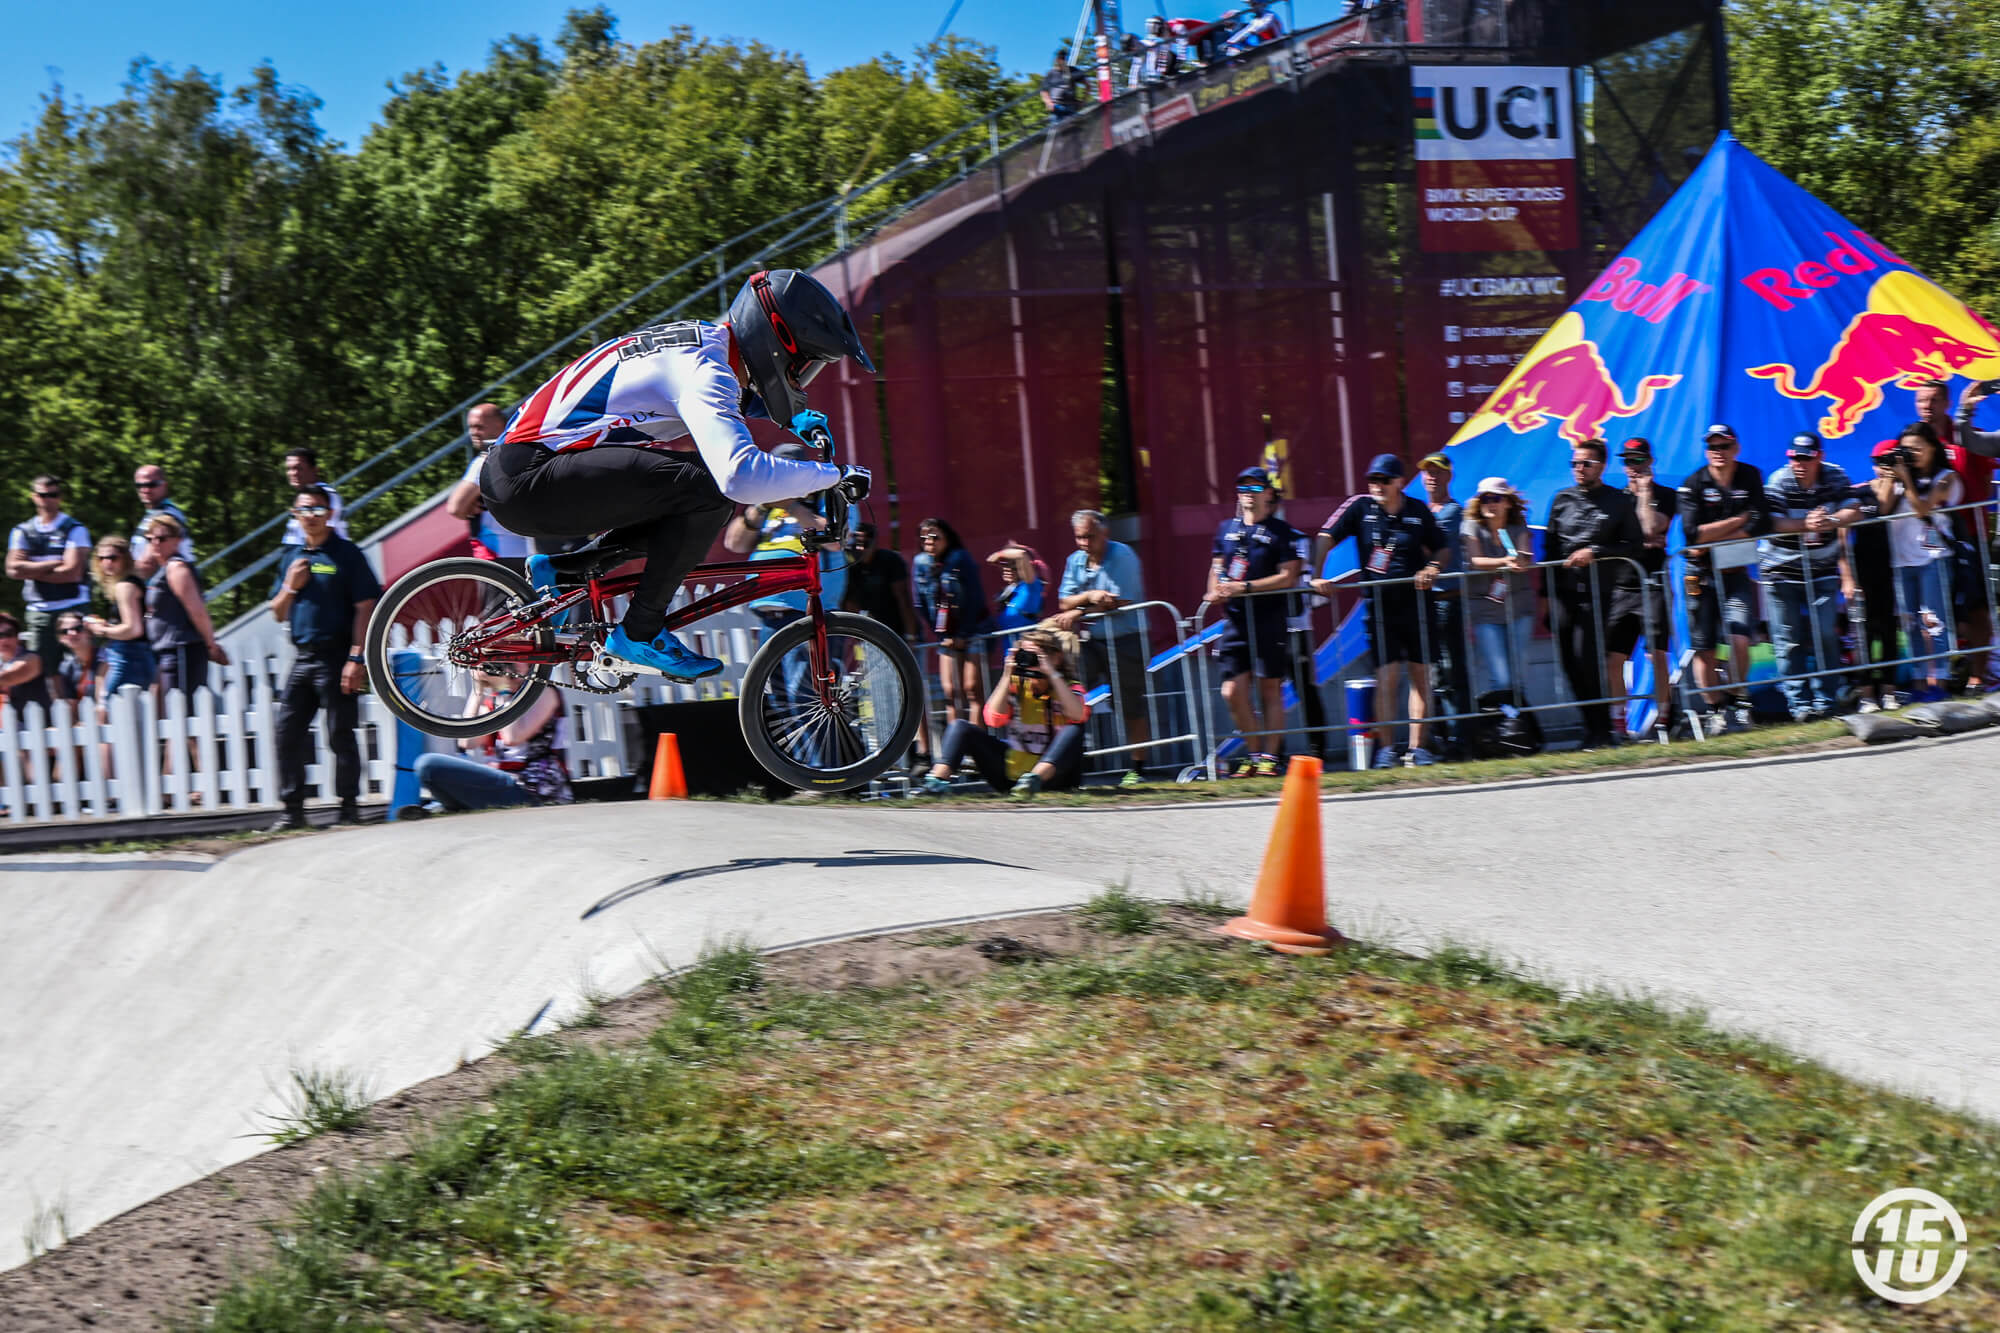 Quillan Isidore 2018 R3 UCI SX Papendal-7522 - Fifteen BMX